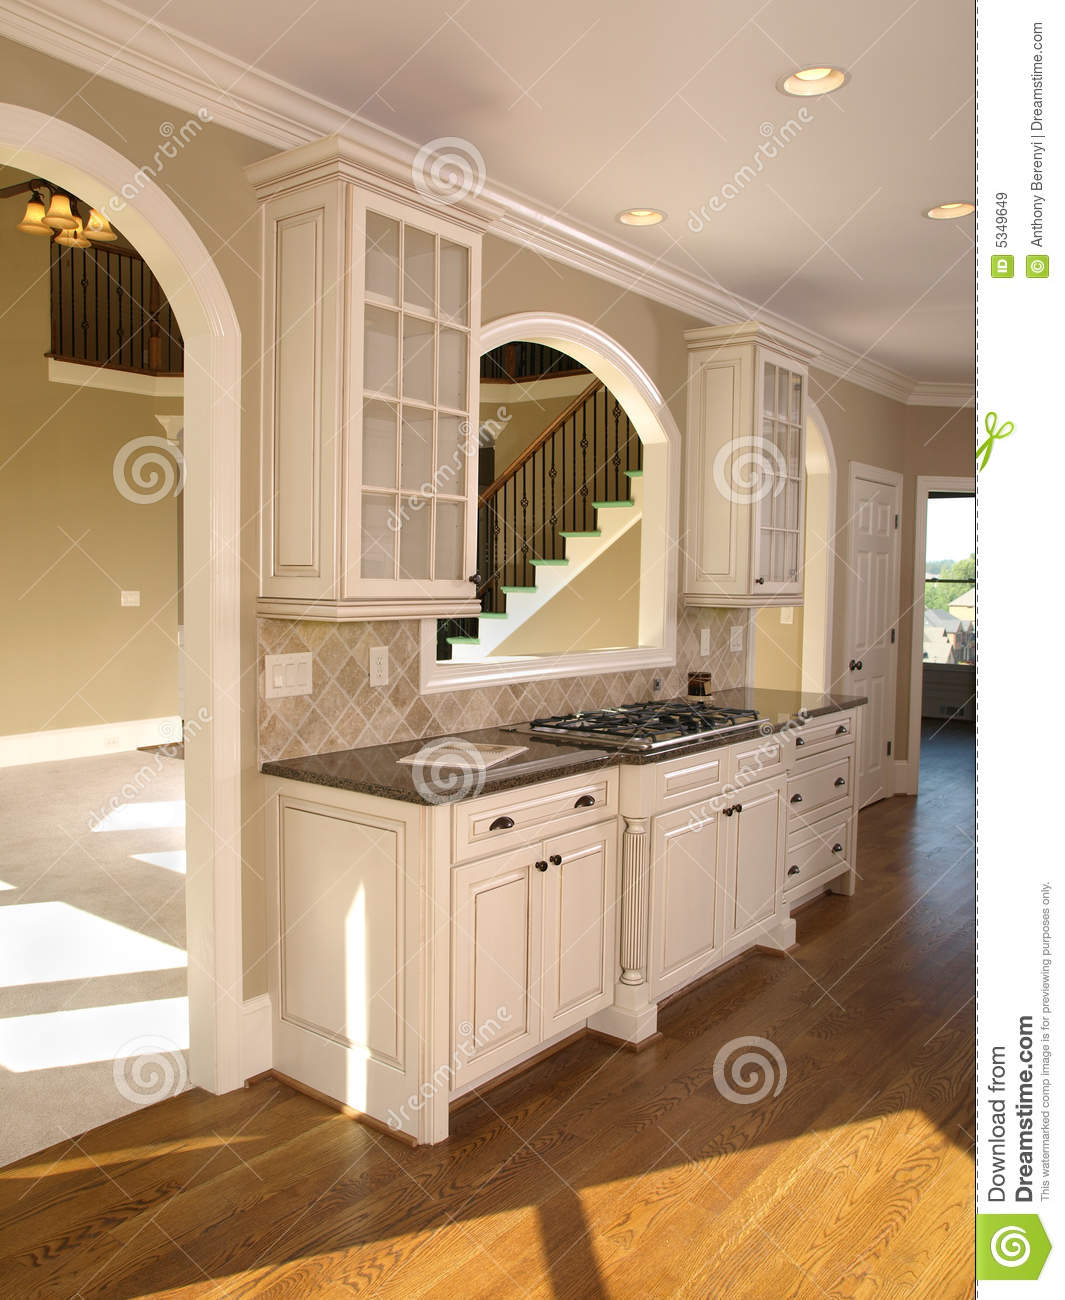 Luxury model home white kitchen royalty free stock images for Model home kitchen images